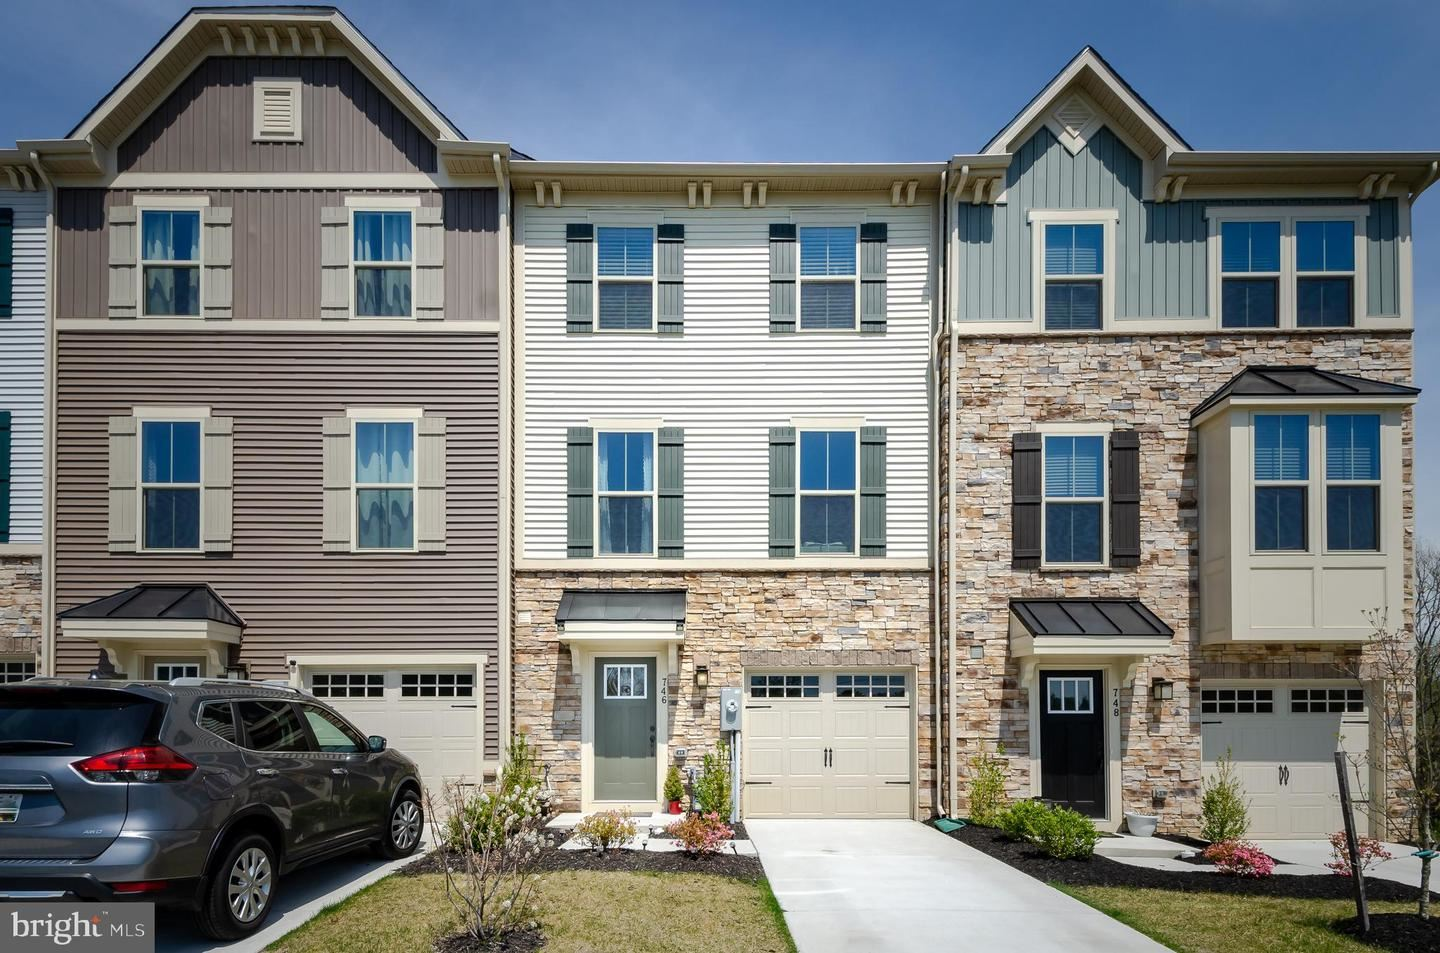 746 THURLOW CT, Bel Air, MD 21014 - MLS#: MDHR259444